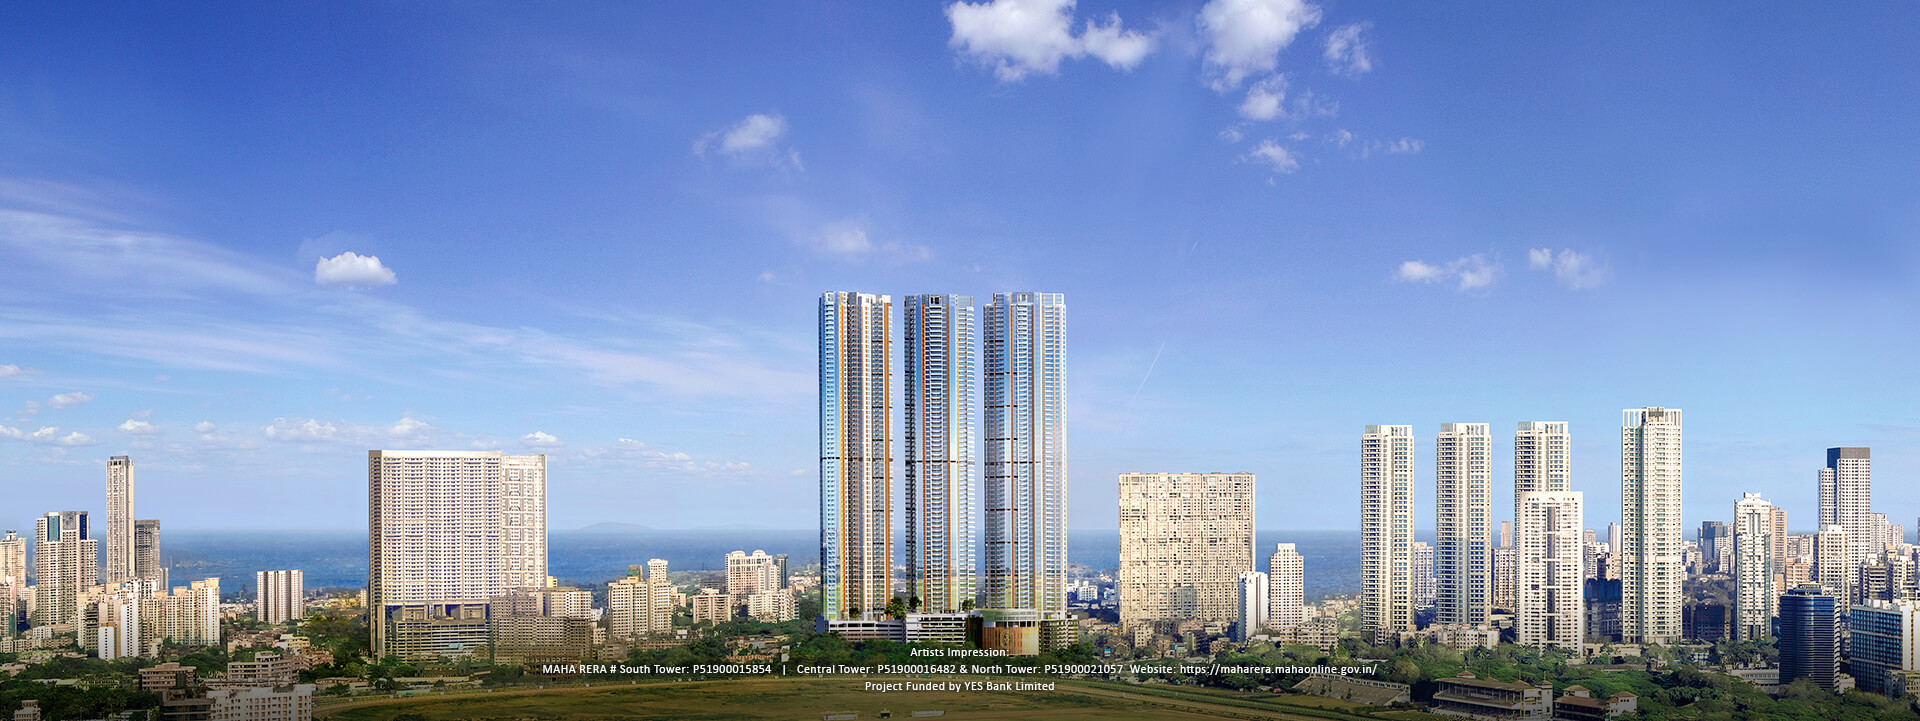 piramal mahalaxmi north tower